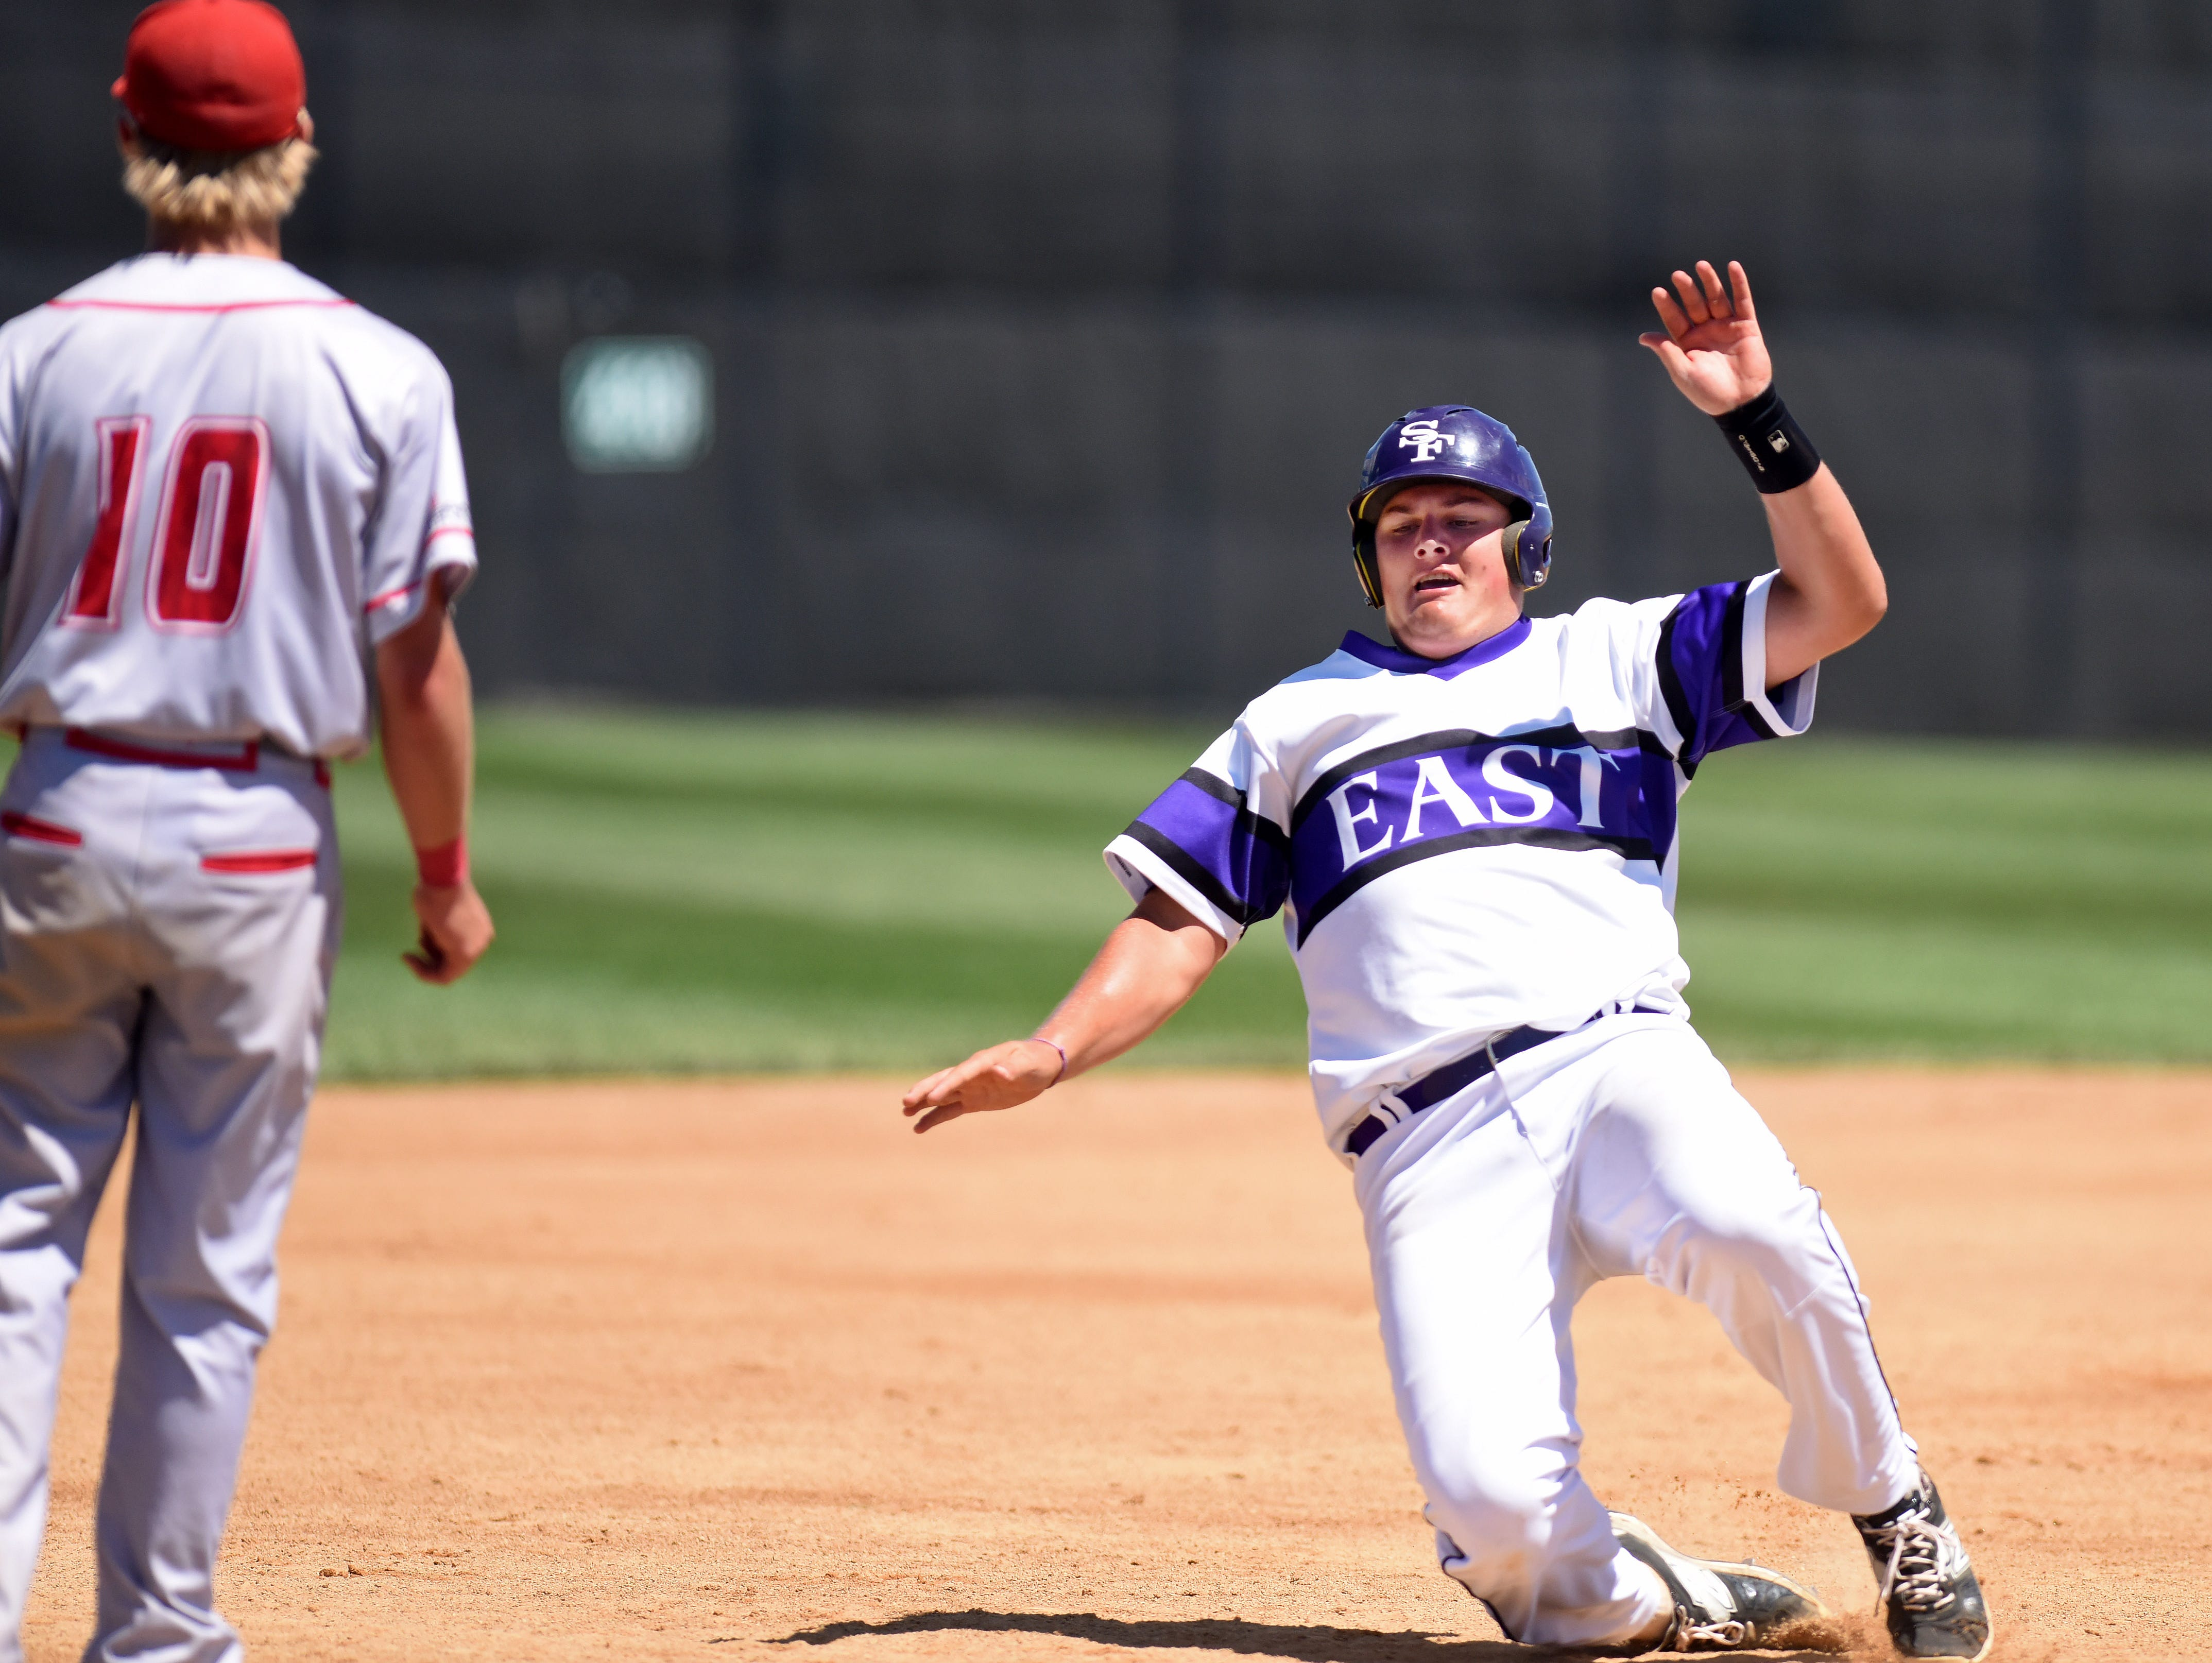 Sioux Falls Post 15 East's Evan Kuhnert slides safely into third base against Rapid City Post 320 during the American Legion Class A Baseball State Tournament at Harmodon Park on Saturday afternoon.